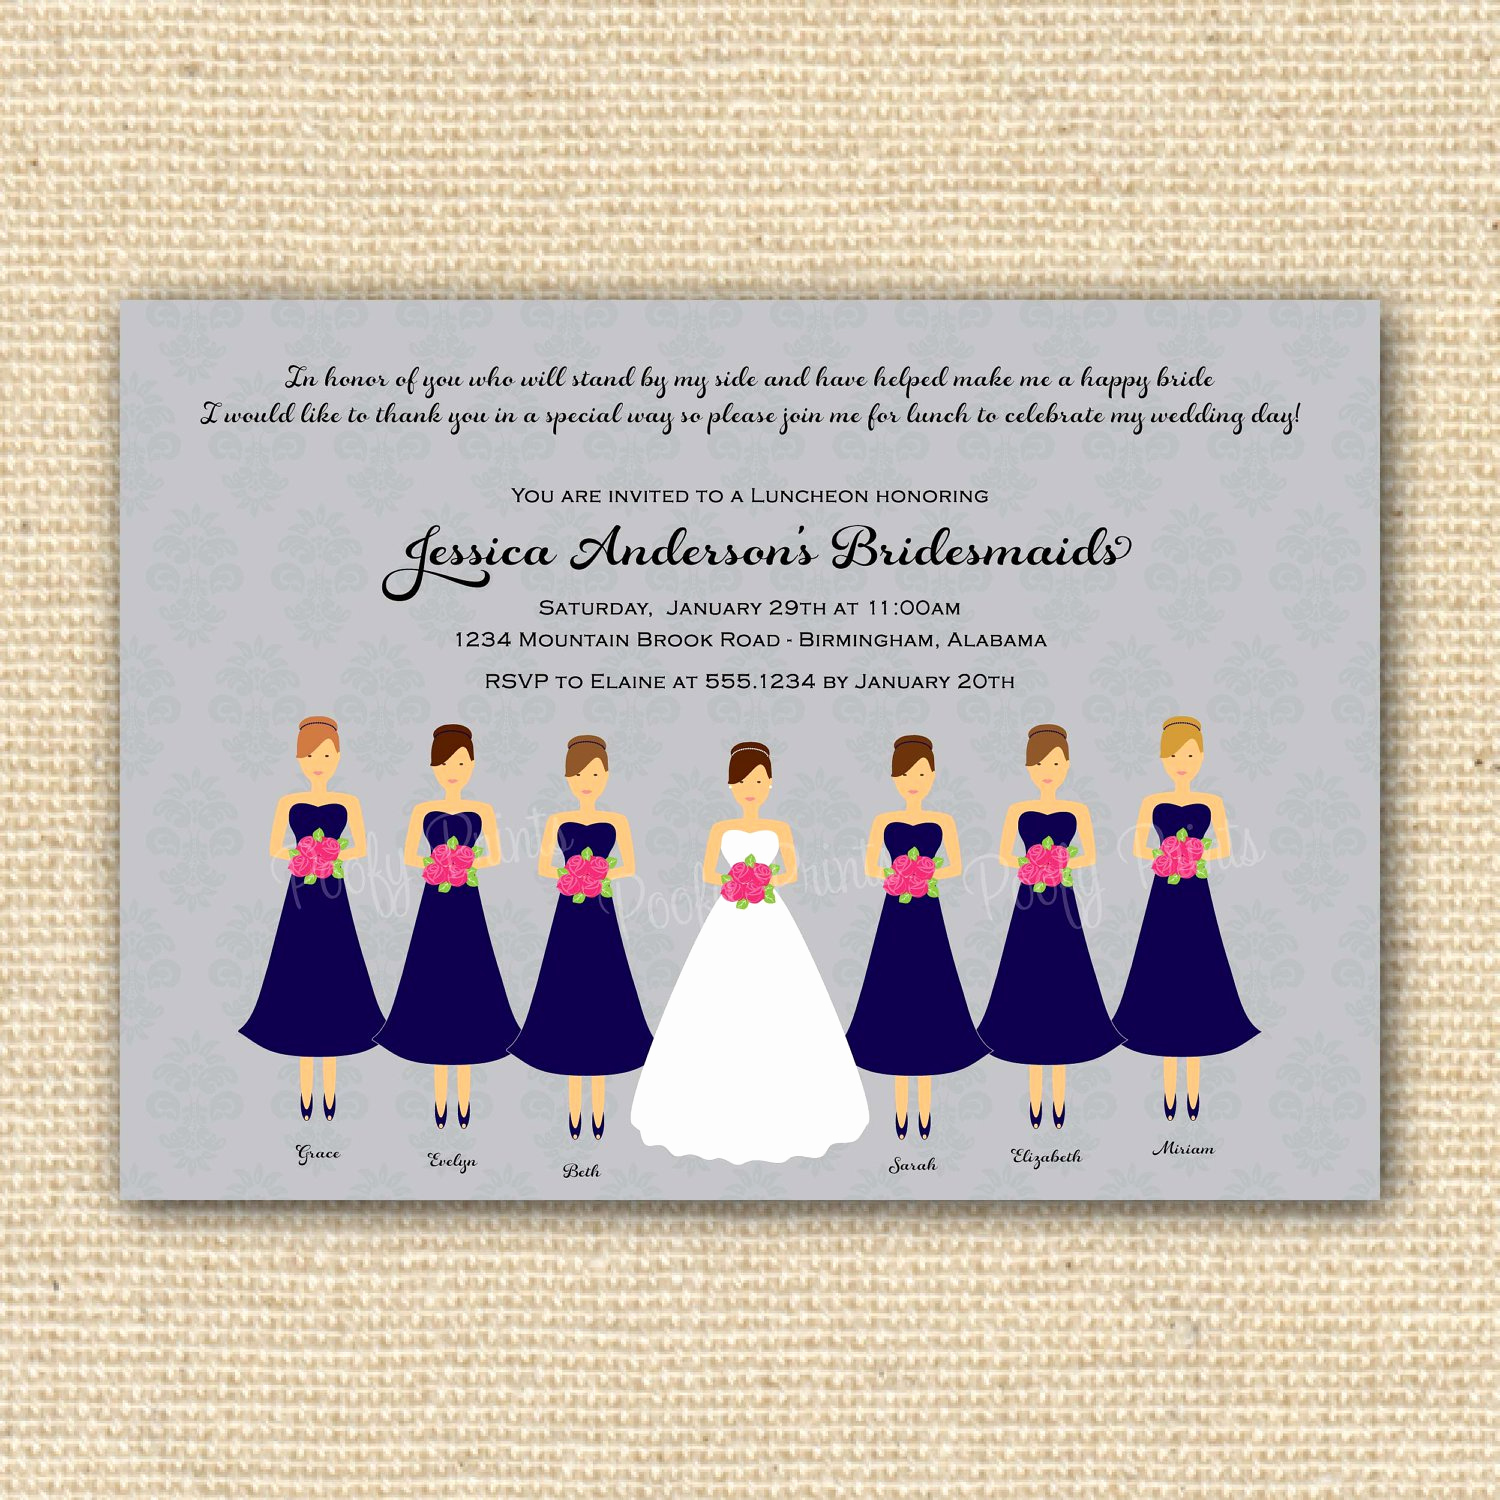 Bridesmaid Luncheon Invitation Wording New Bridal Luncheon Invitations Printable